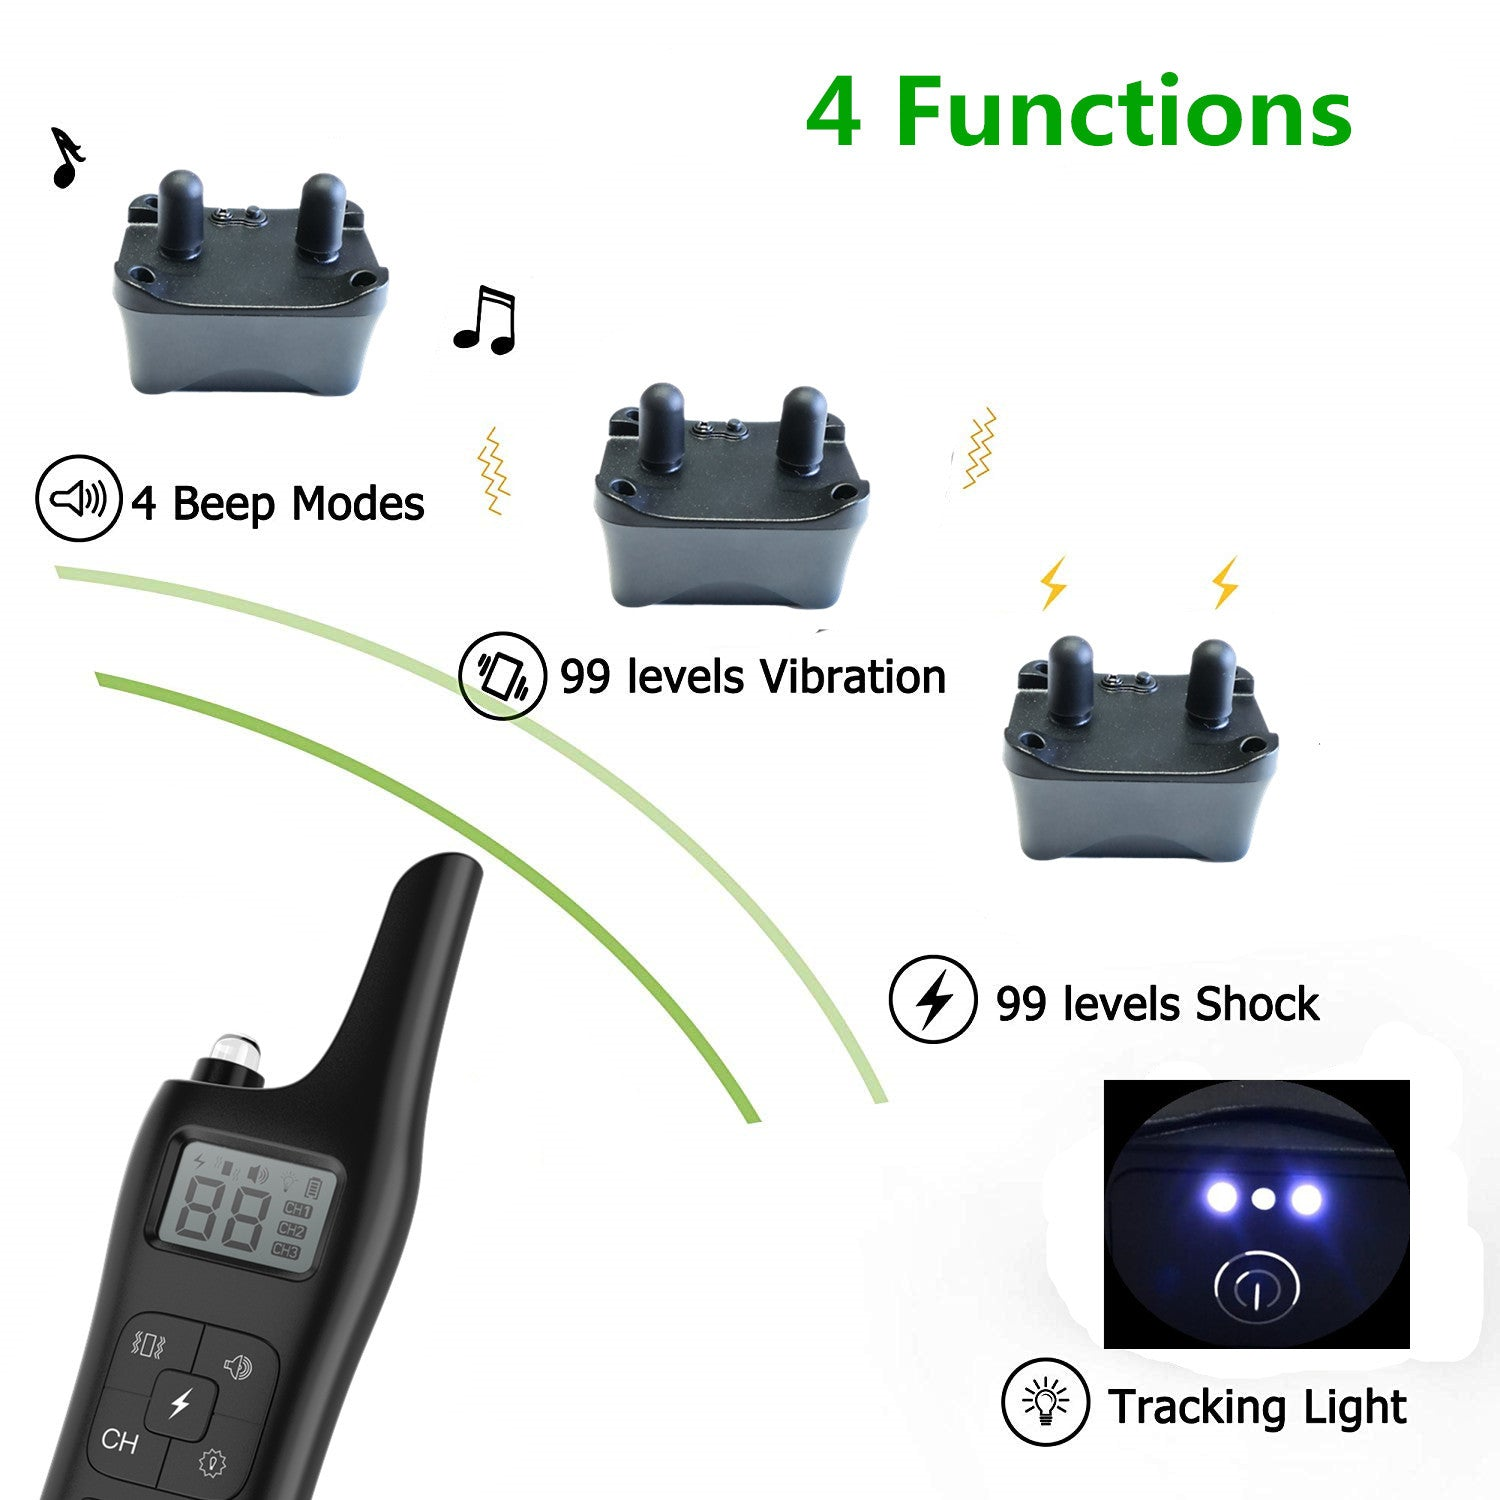 Dog Trainer No Barking 800m Remote Electric Shock Vibration Pet Dog Training Electronic Collar Waterproof 885-1 drag one_British standard